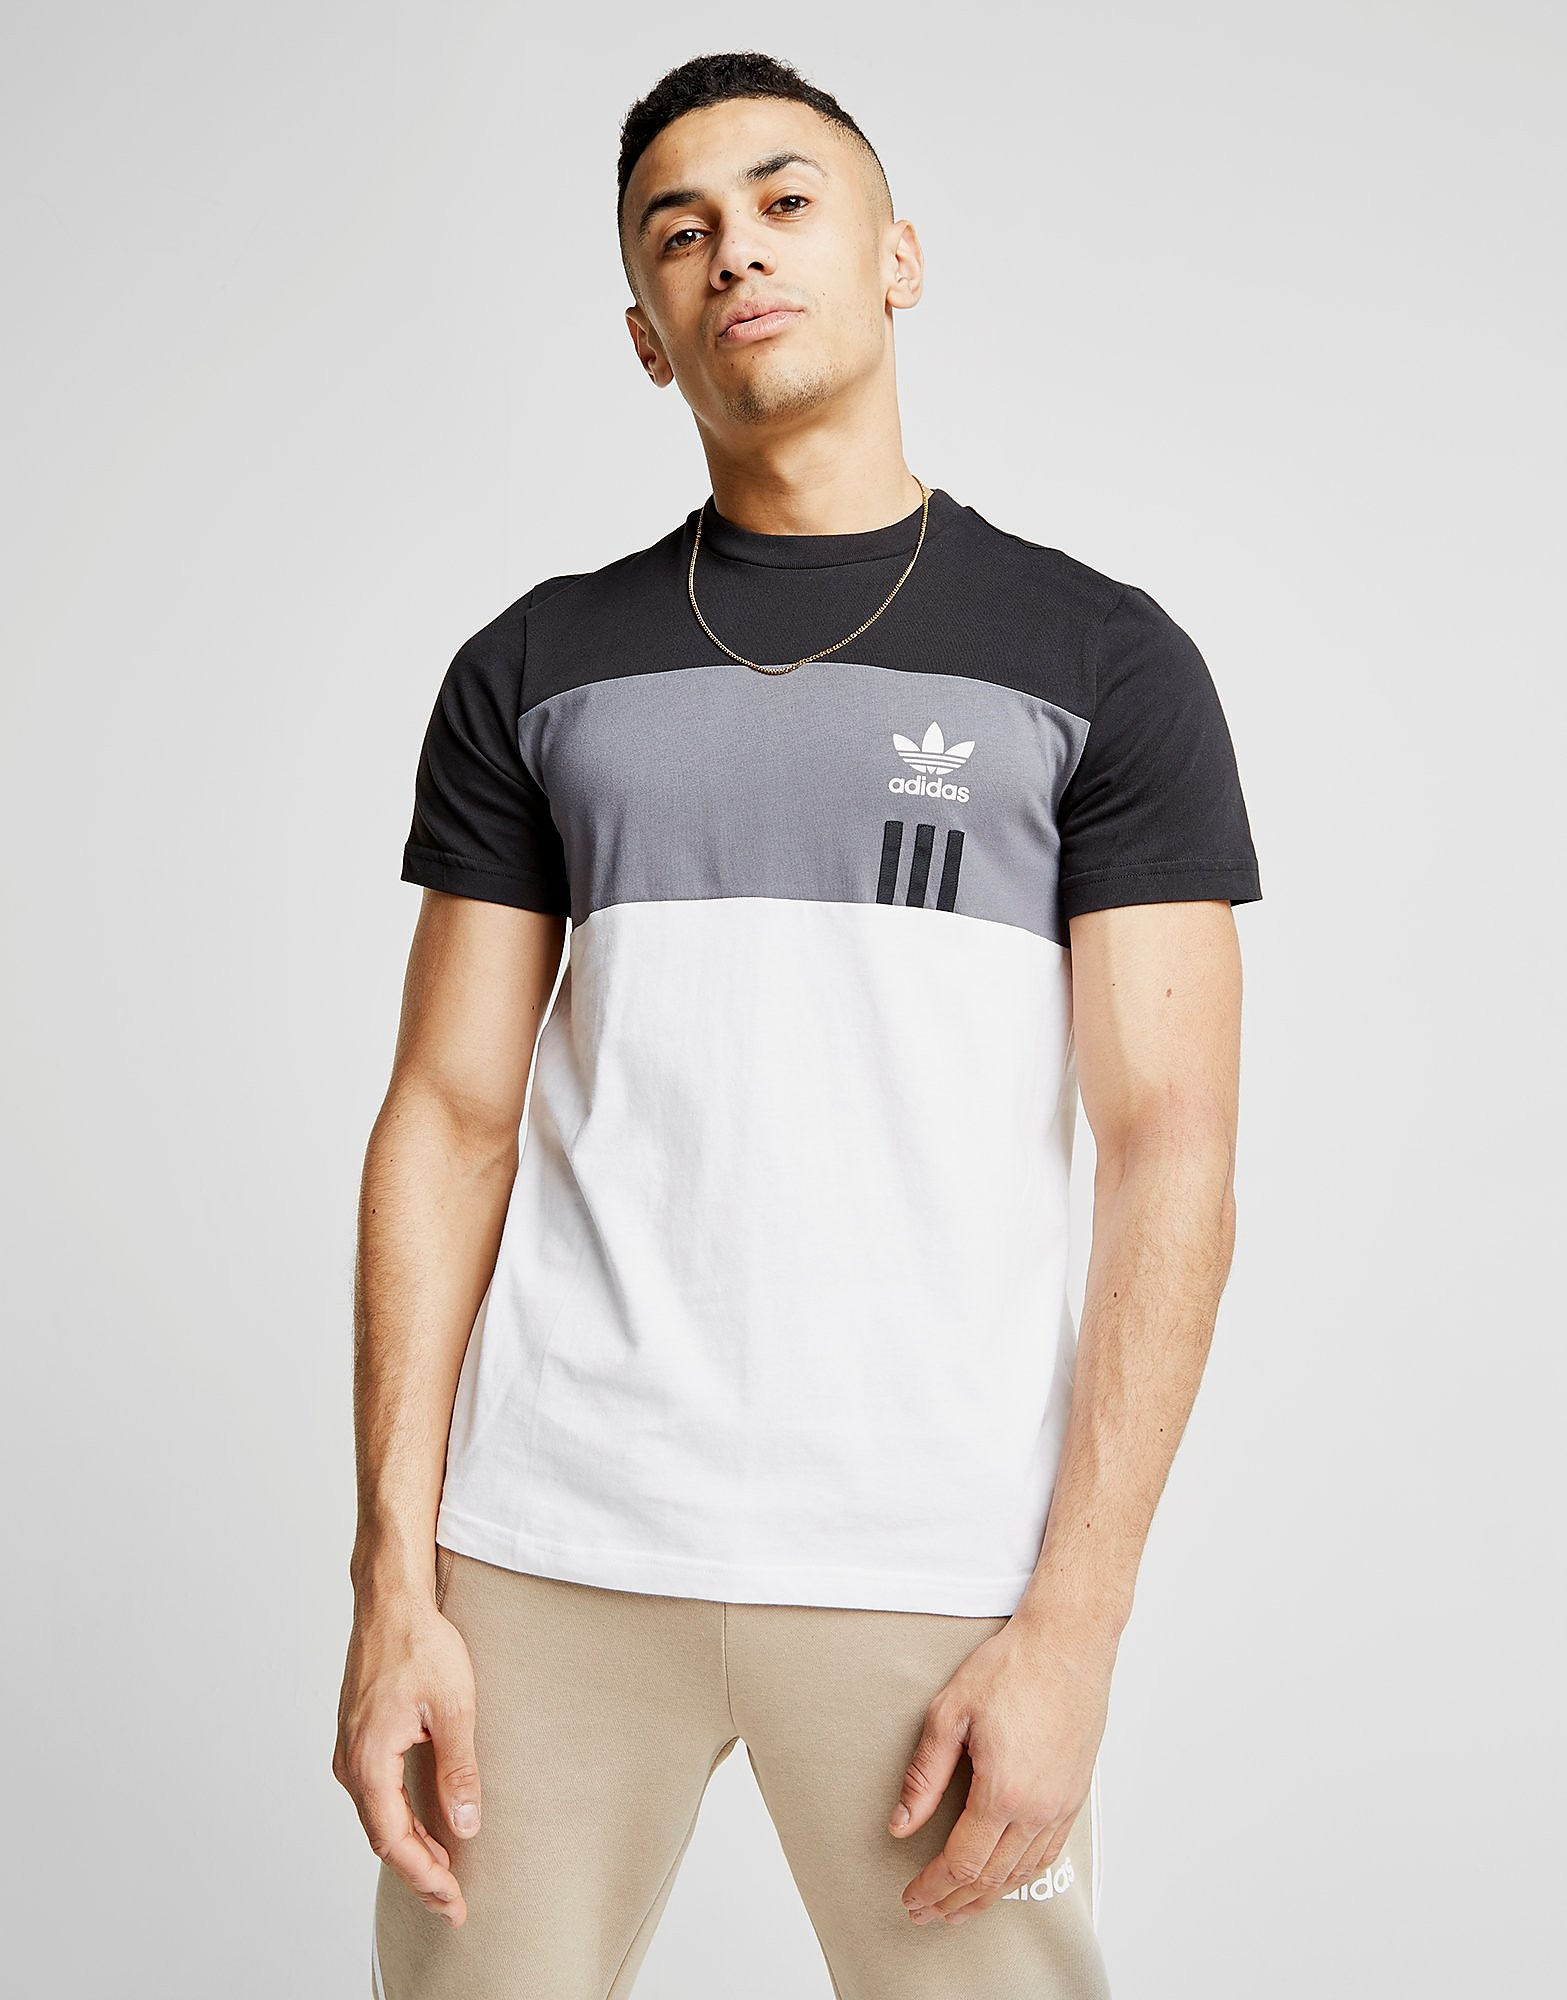 adidas Originals ID96 T-Shirt